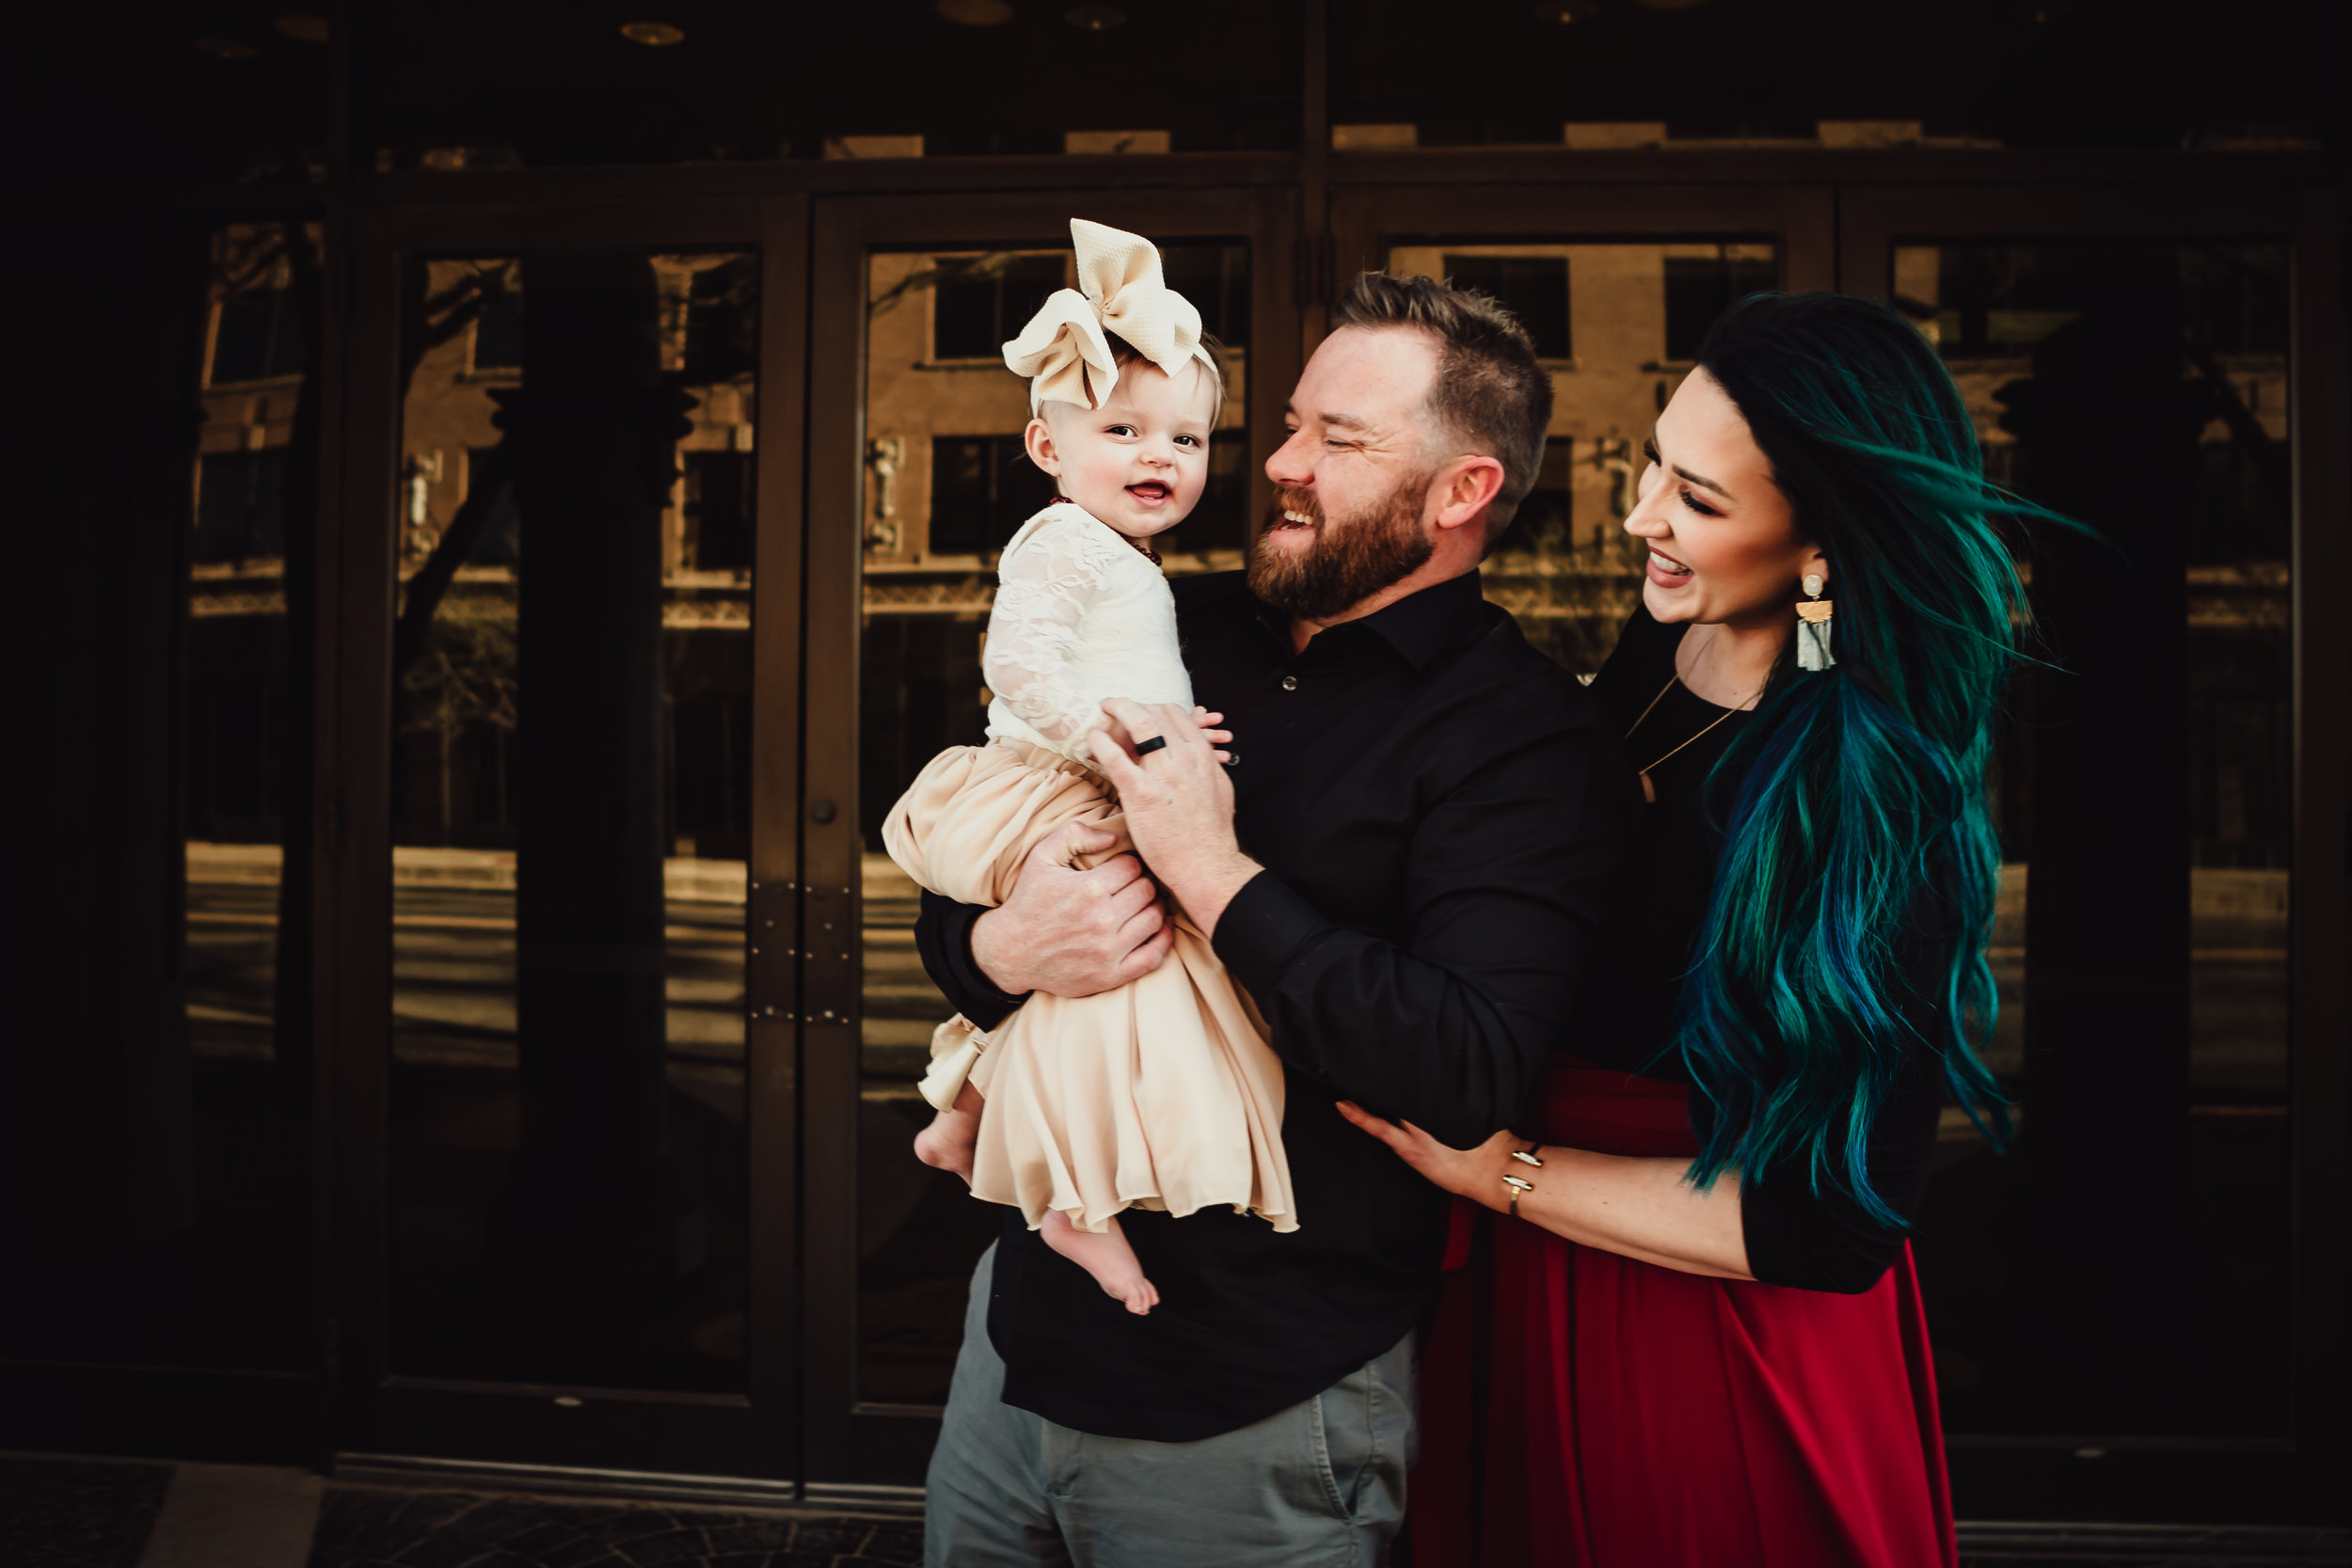 Downtown light and gold mirror doors behind family gazing at little one in awe of her beauty #rubyred #familyphotos #downtown #hairstyle #personality #amarillotexas #familyphotographer #lifestylephotos #amarillophotographer #locationchoice #texasfamilyphotos #familyofthree